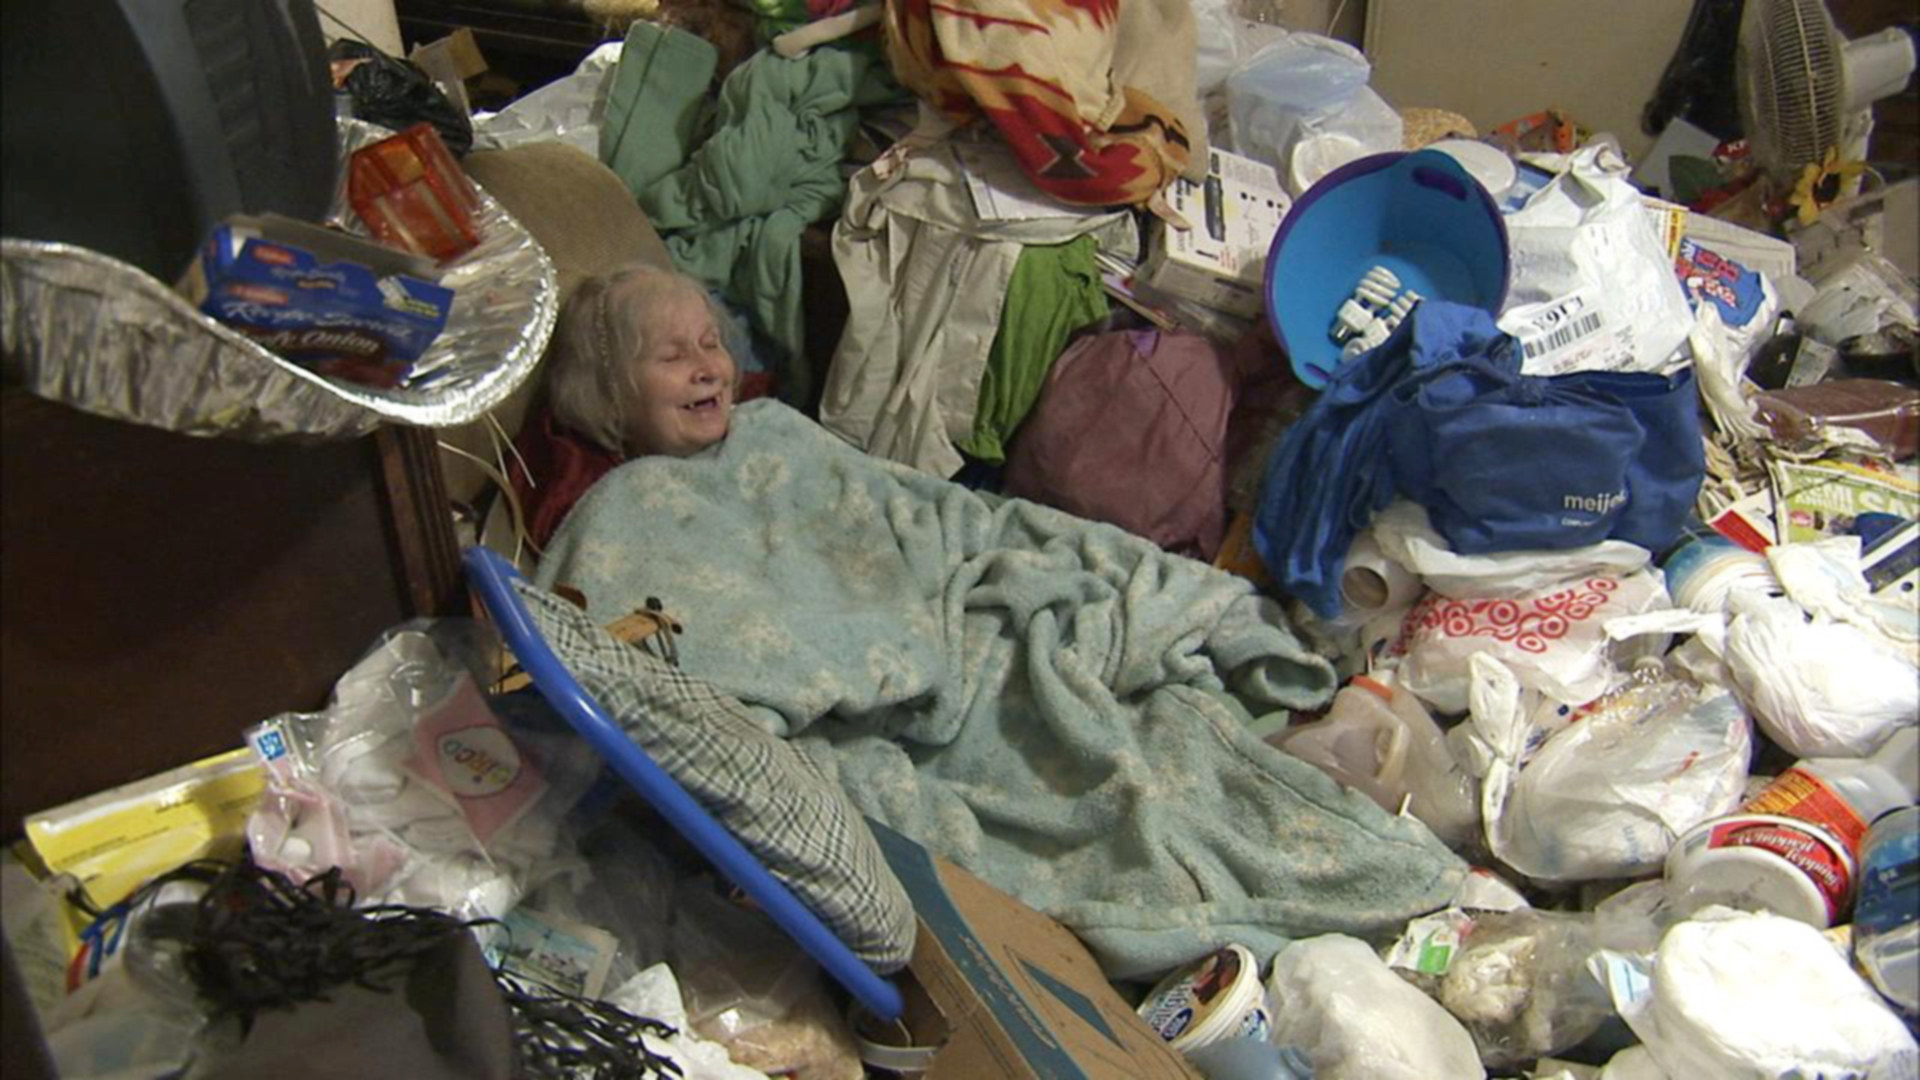 HOARDERS, Janet, 'Phyllis/Janet', (Season 4, aired June 20, 2011), 2009-